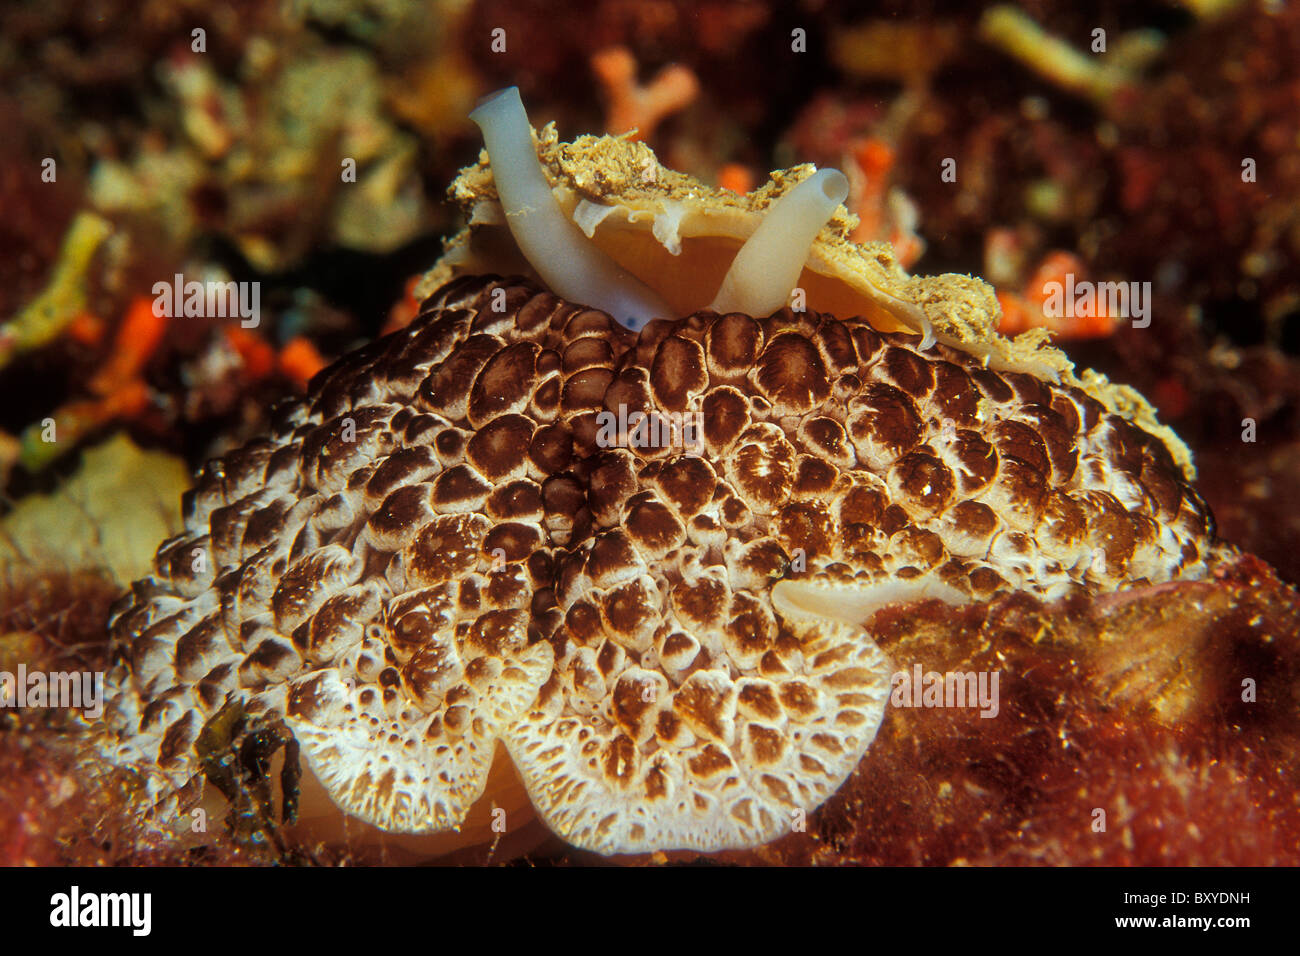 Umbrella Sidegill Slug, Umbraculum mediterraneum, Cres, Adriatic Sea, Croatia - Stock Image